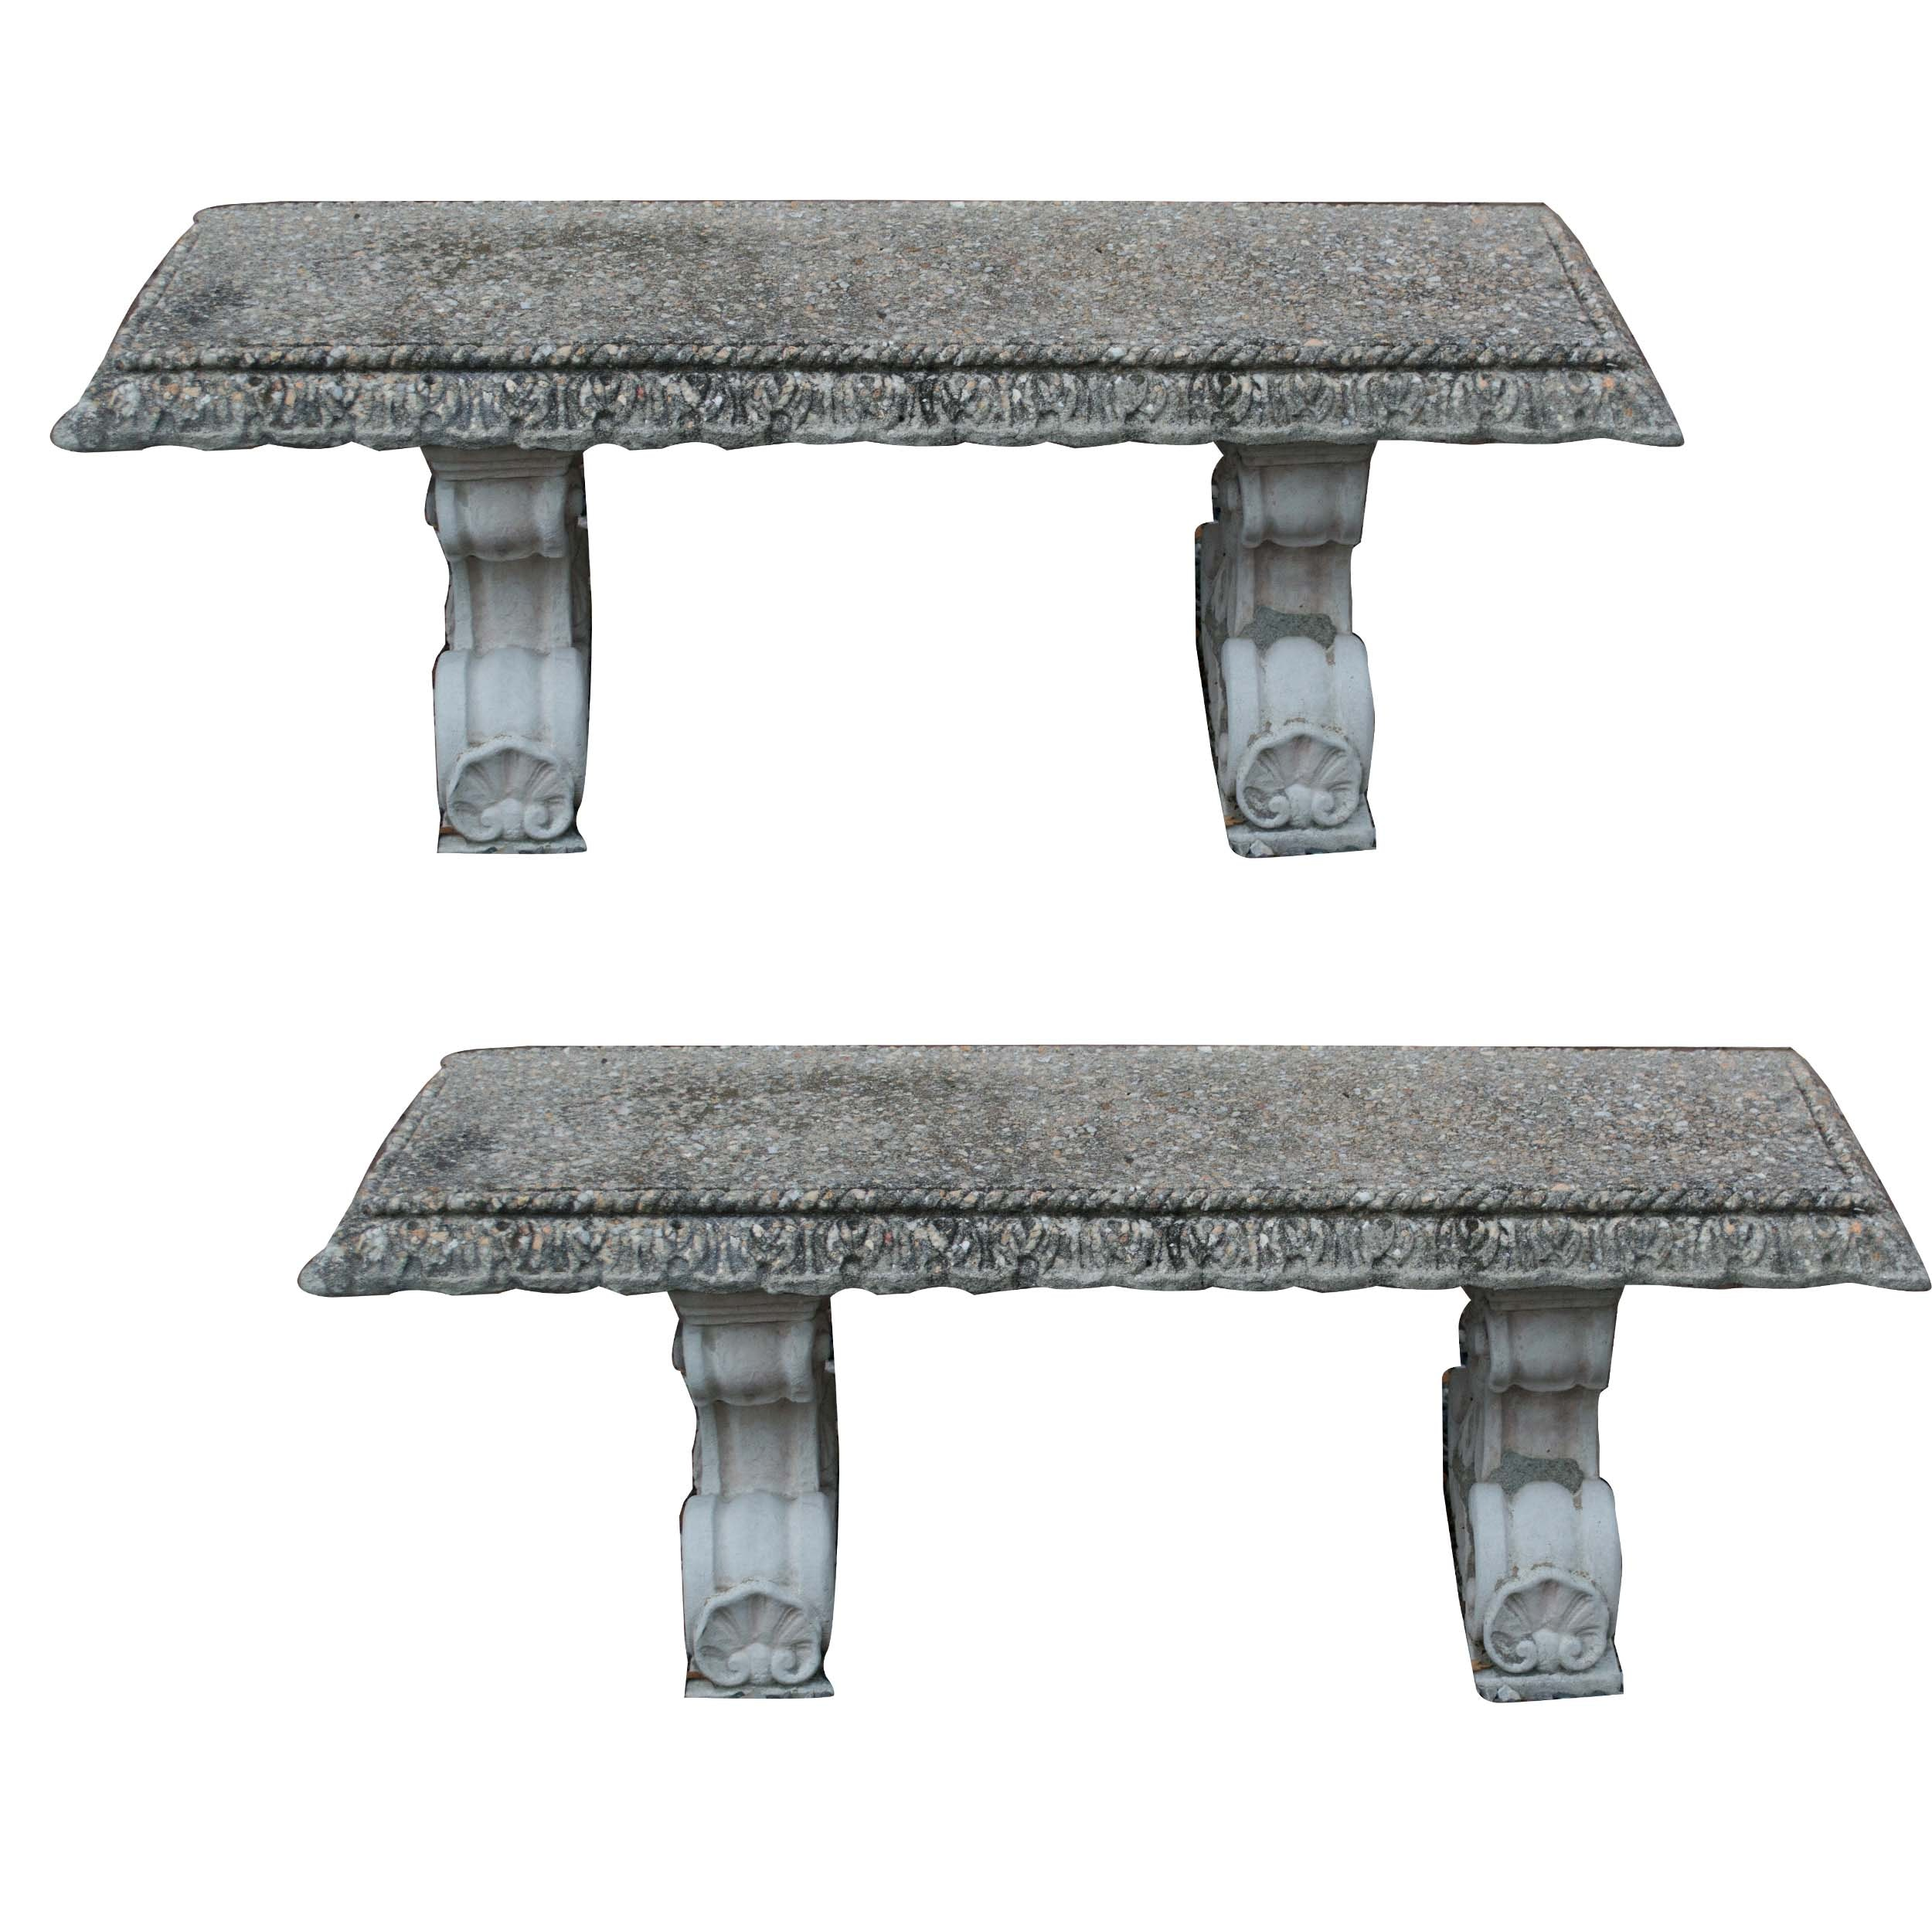 Cement Decor Benches